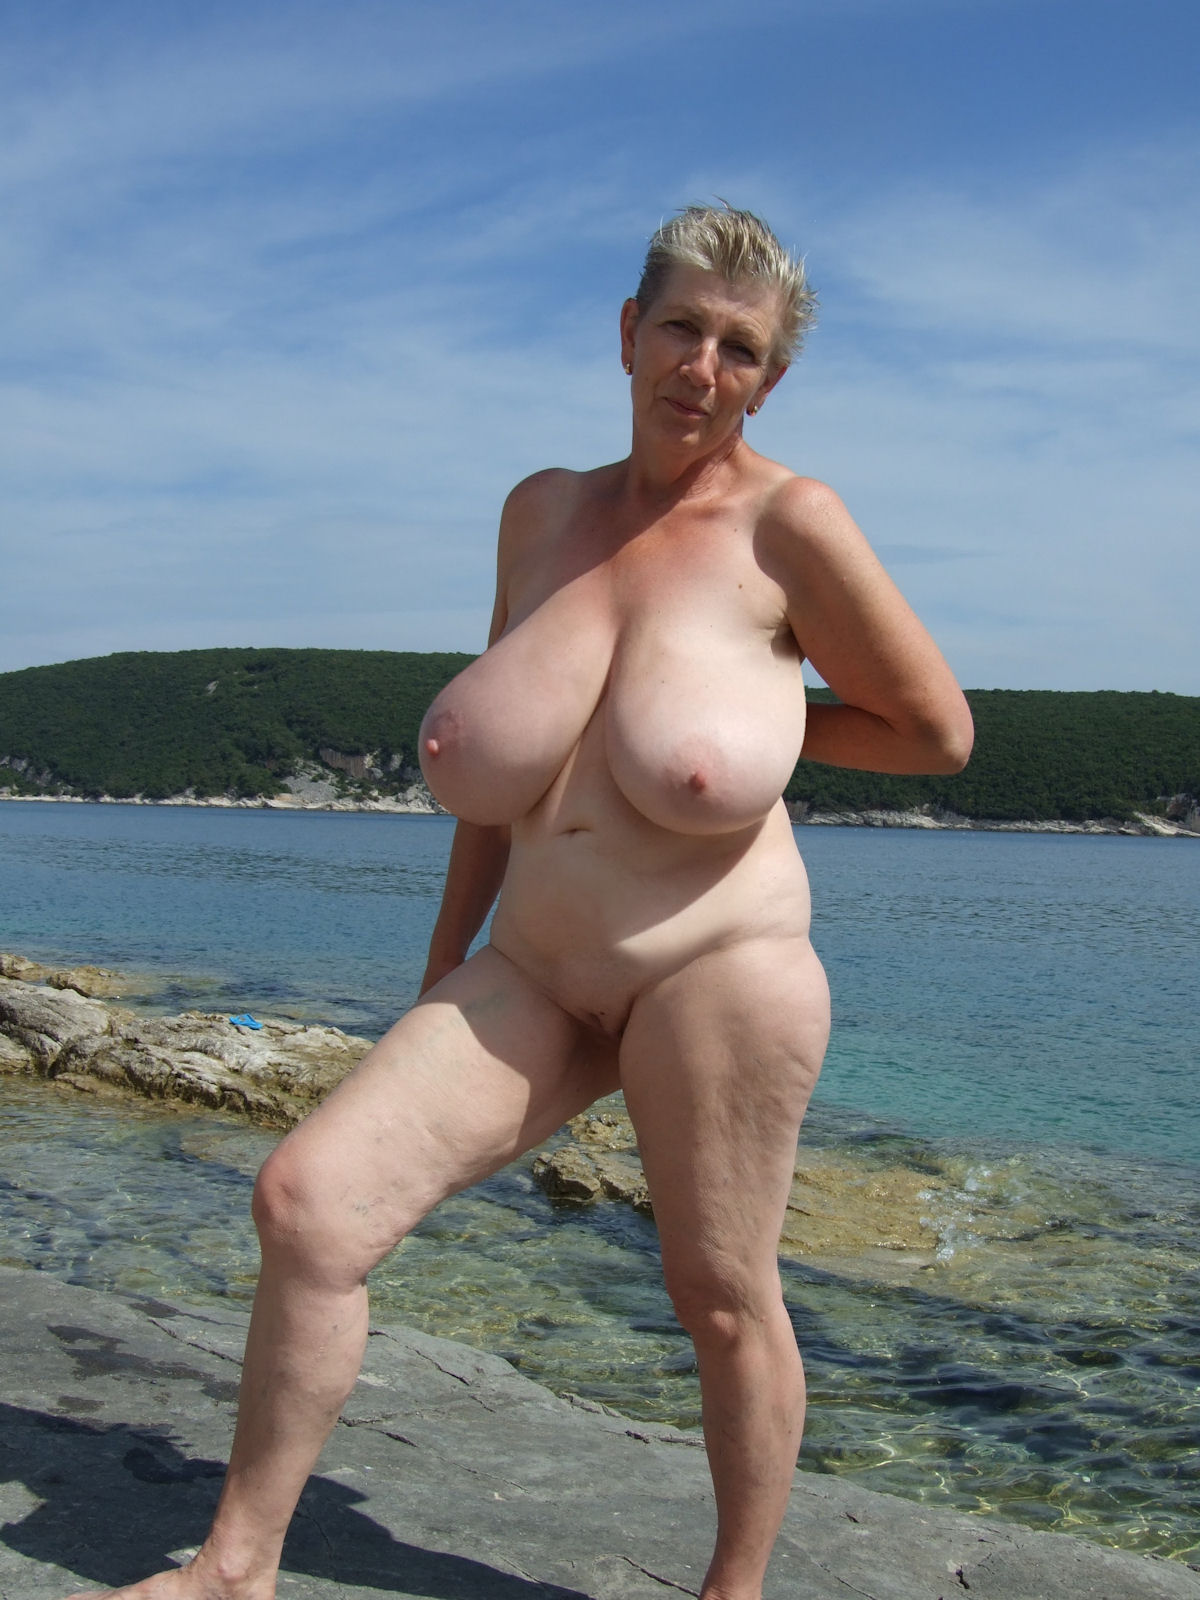 Images of Big Titted Old Women - Amateur Adult Gallery